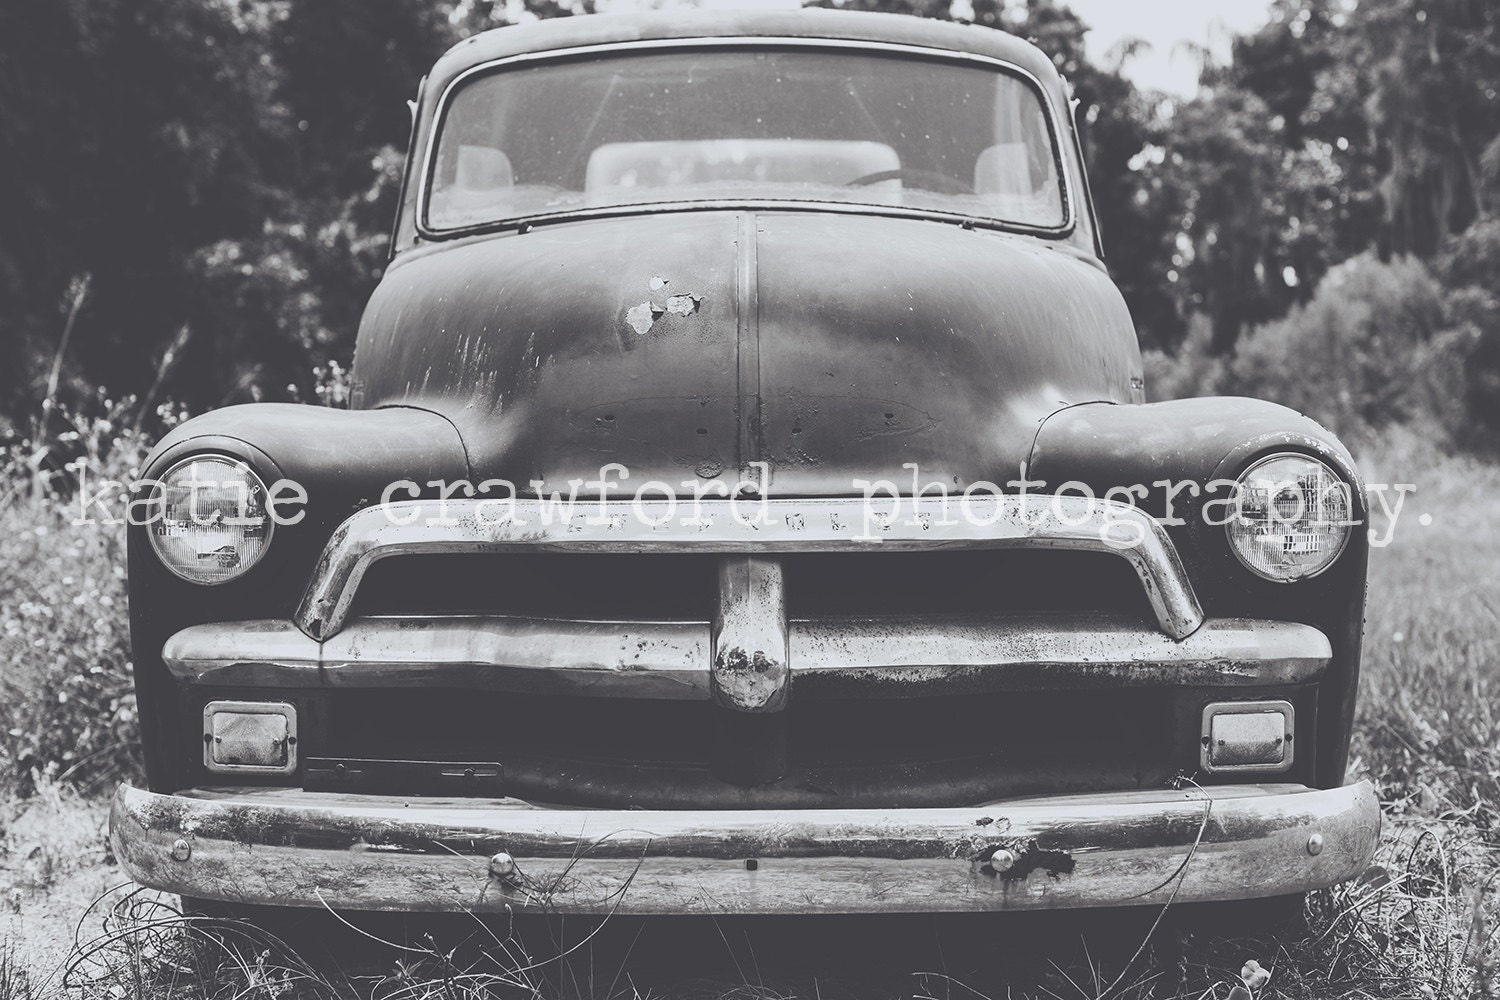 winter garden florida old chevrolet pickup truck in field at